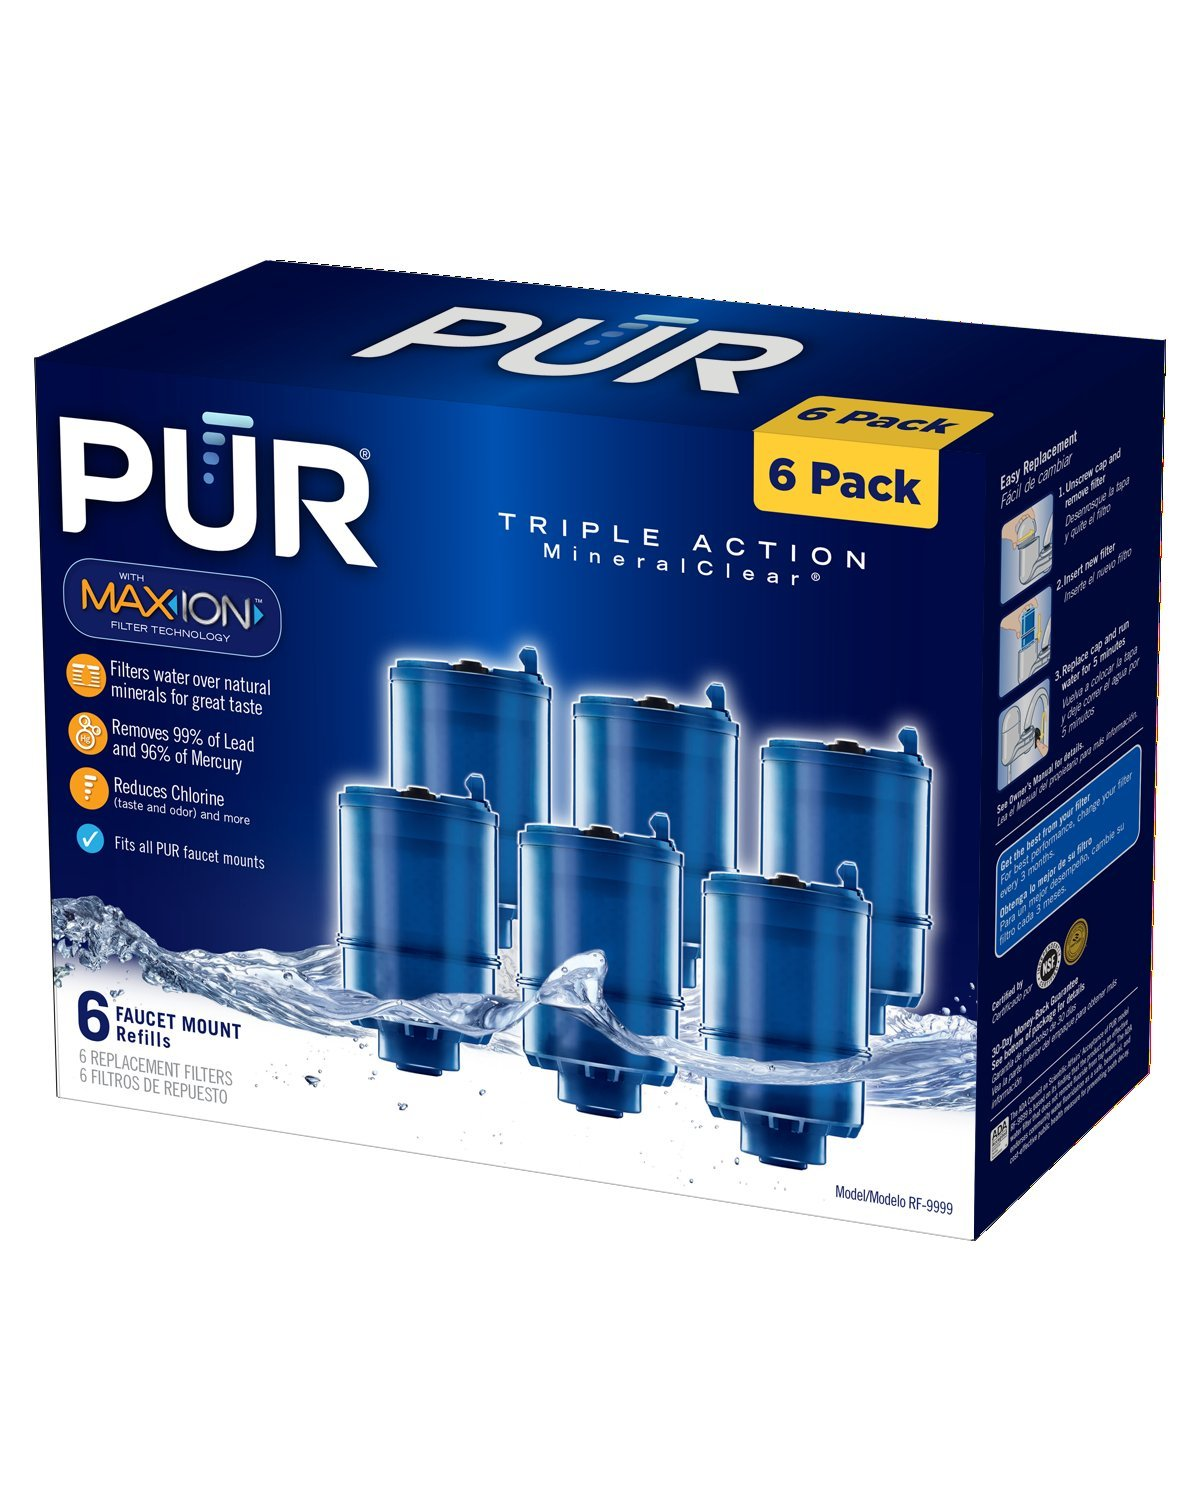 PUR MineralClear Faucet Refill RF-9999, 6 Pack - Faucet Mount Water ...